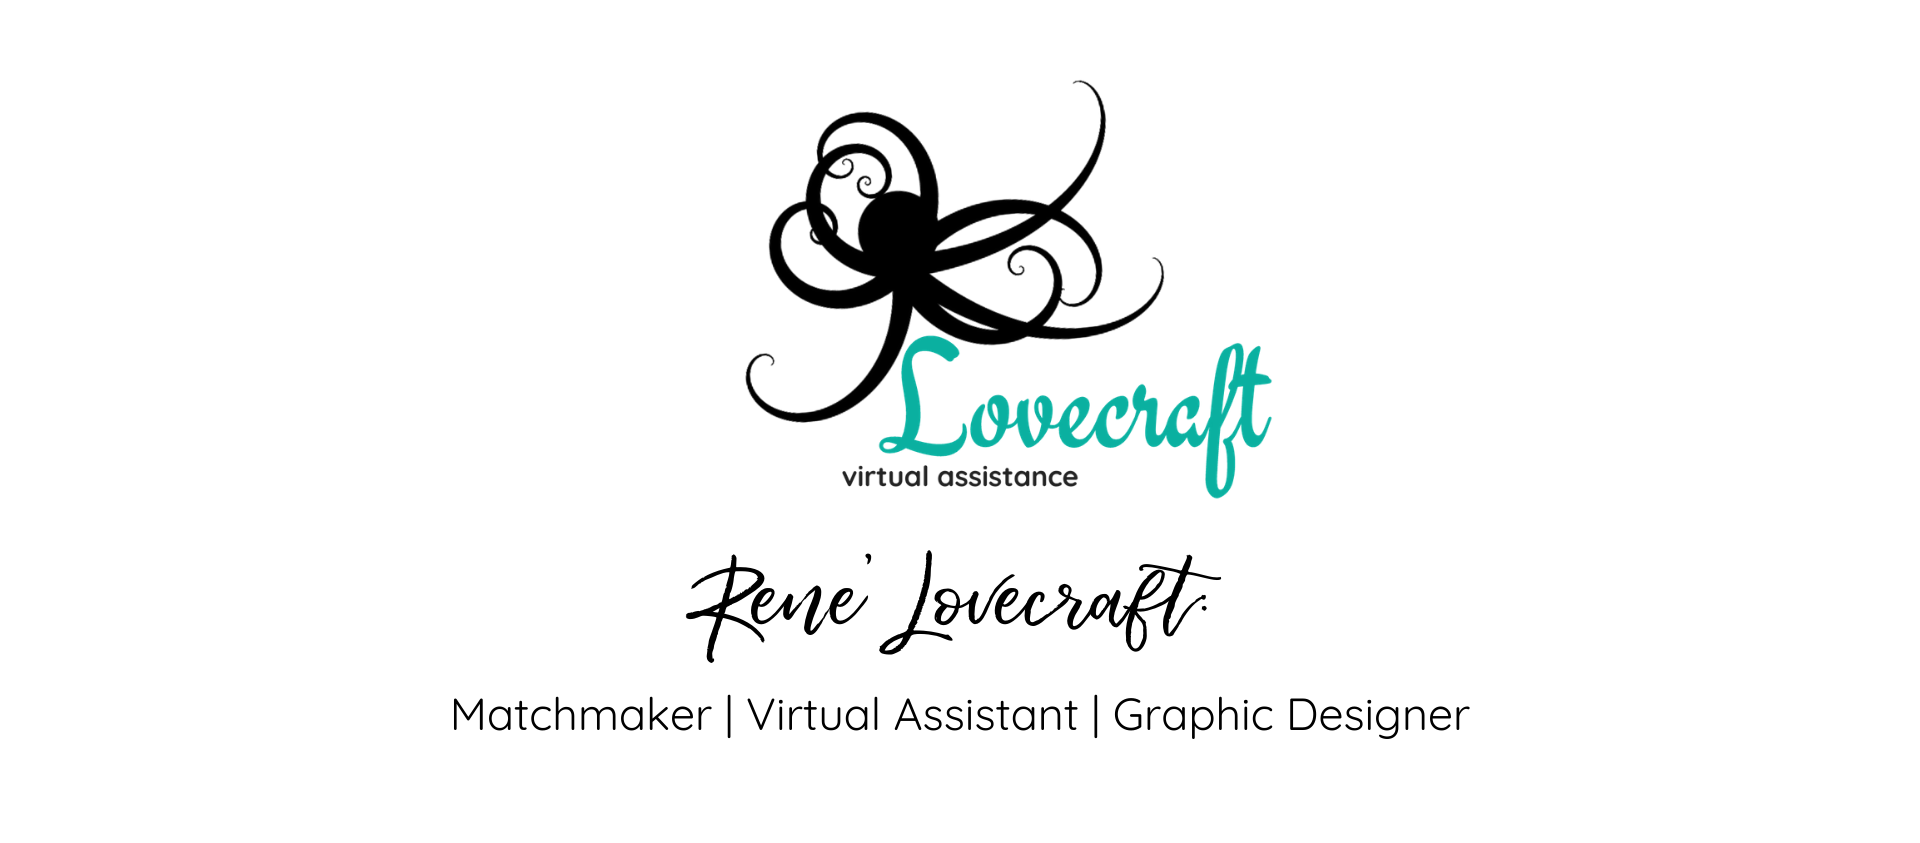 Lovecraft Virtual Assistance